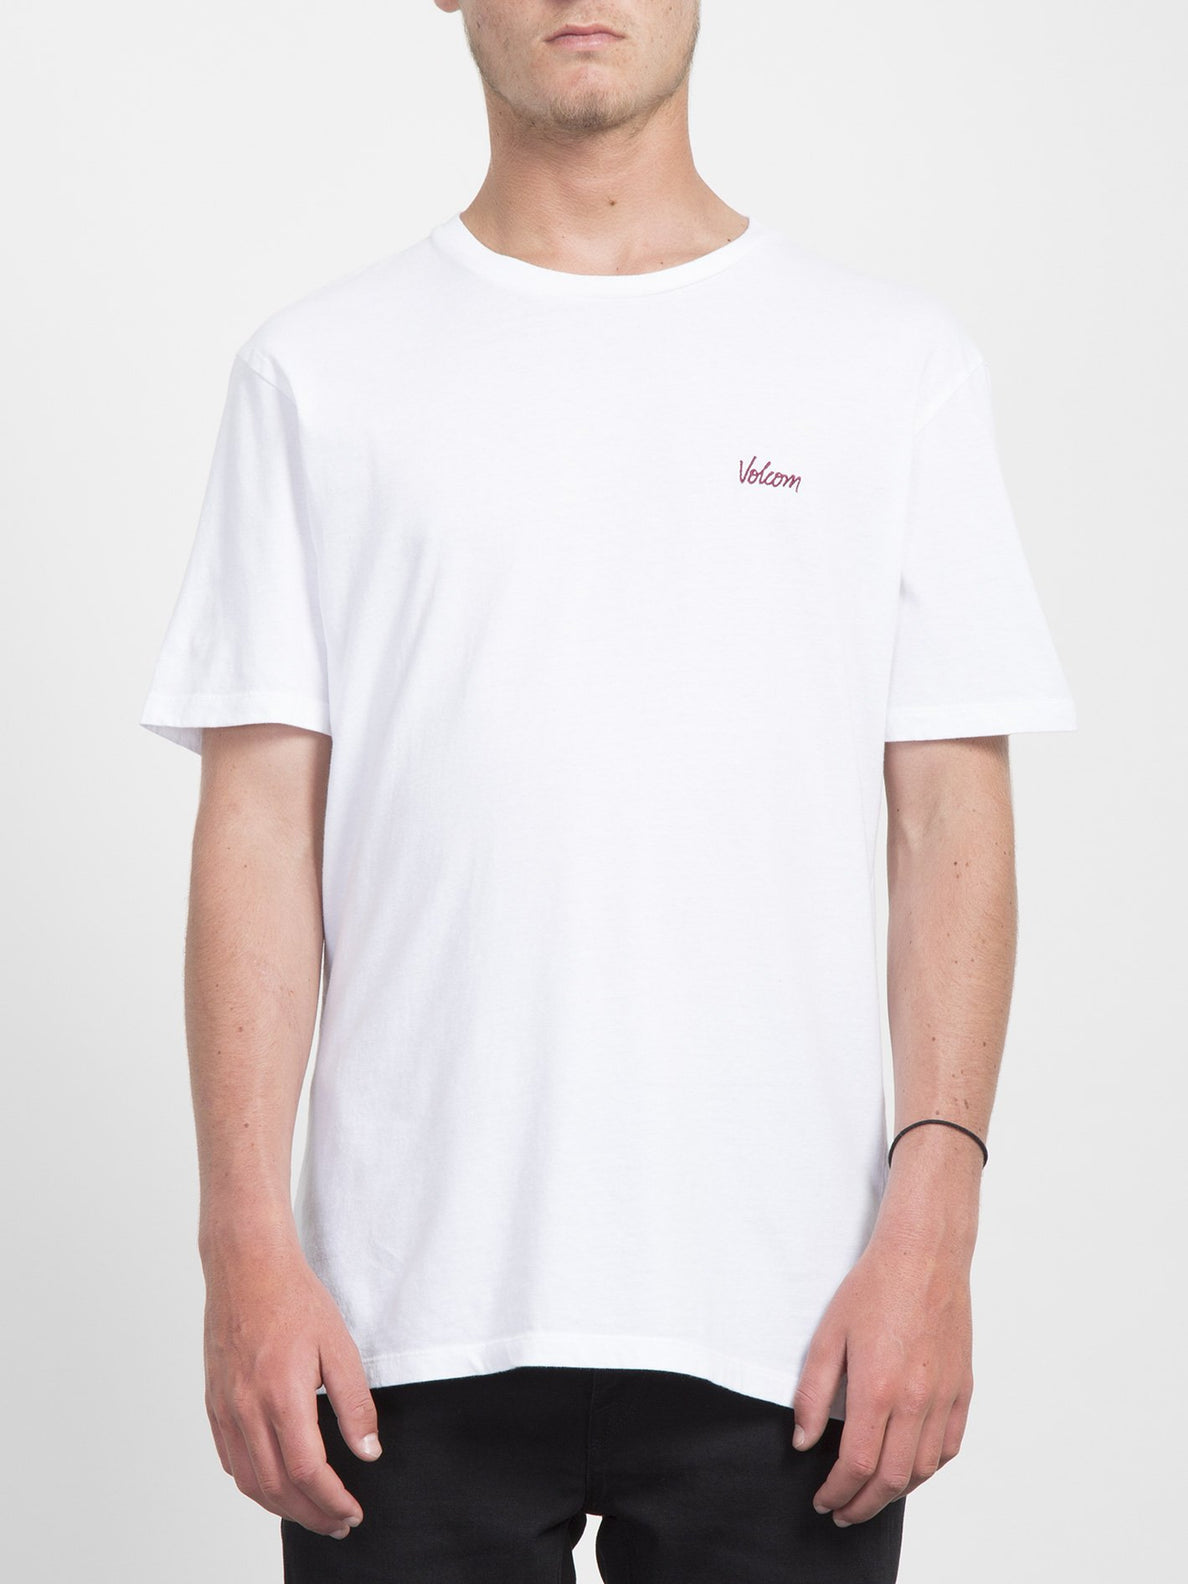 Impression T-shirt  - White